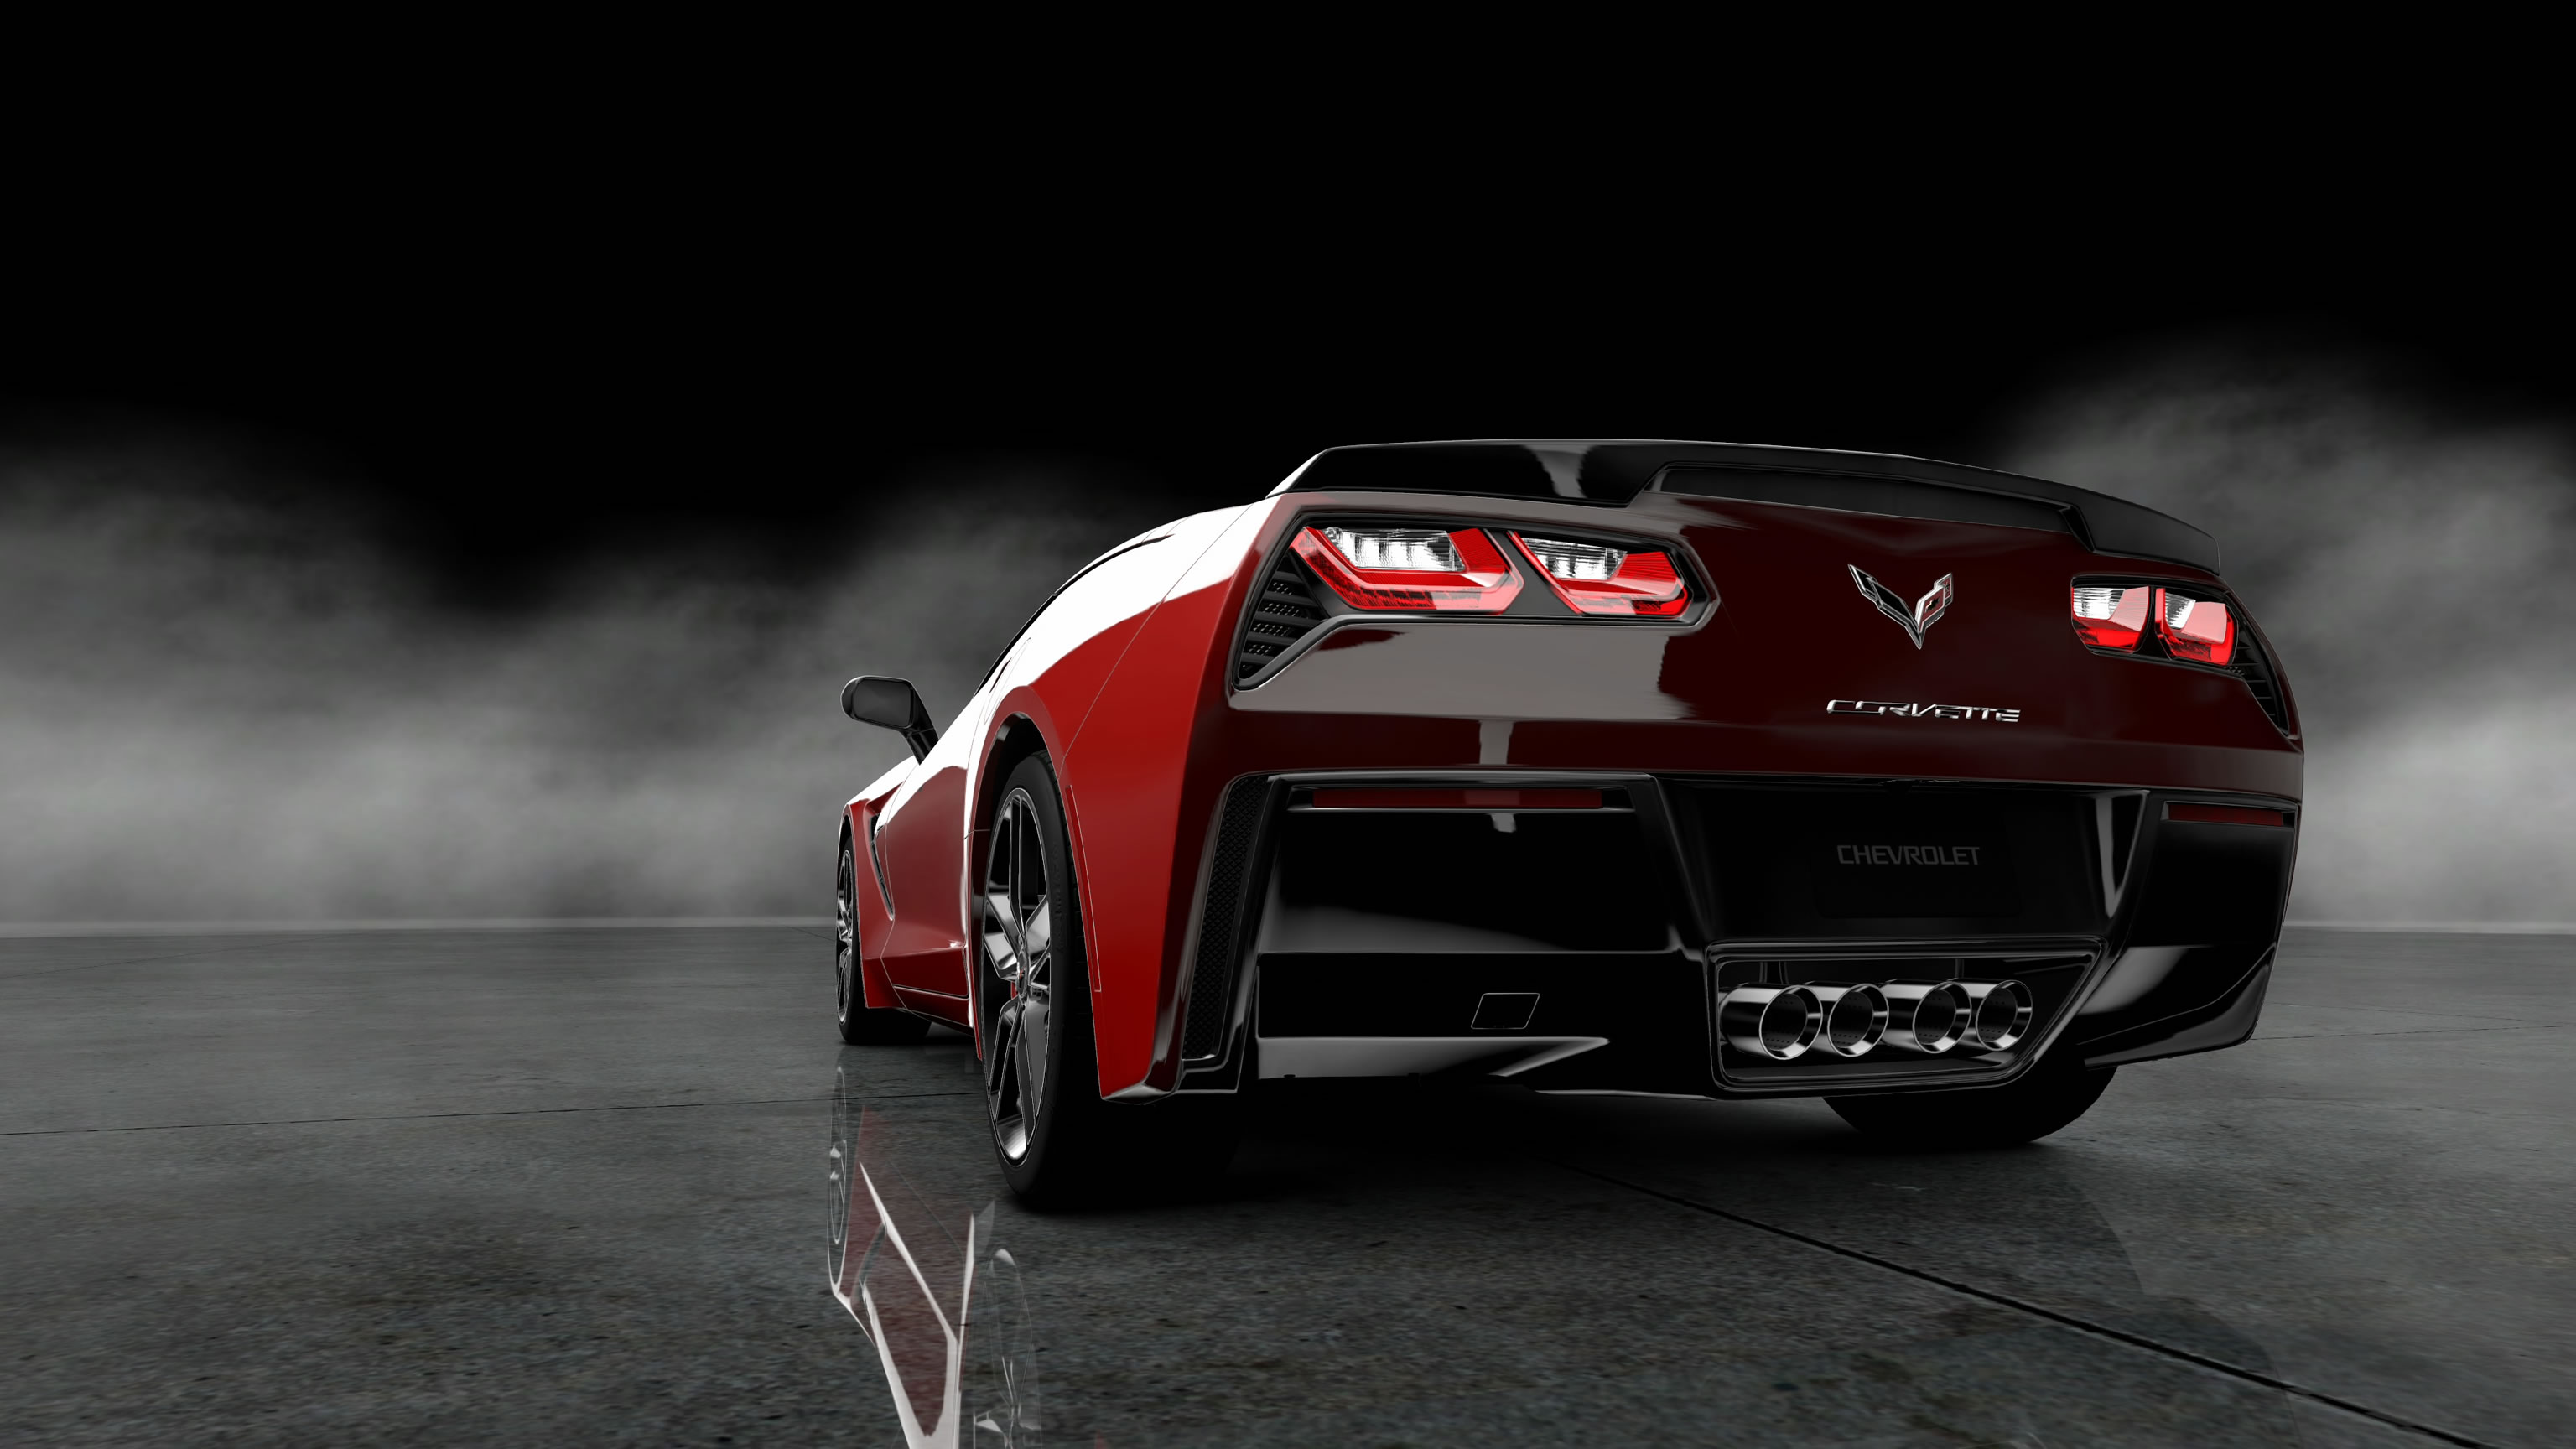 2014 Chevrolet Corvette Stingray Wallpaper 3   CorvetteForum 3072x1728